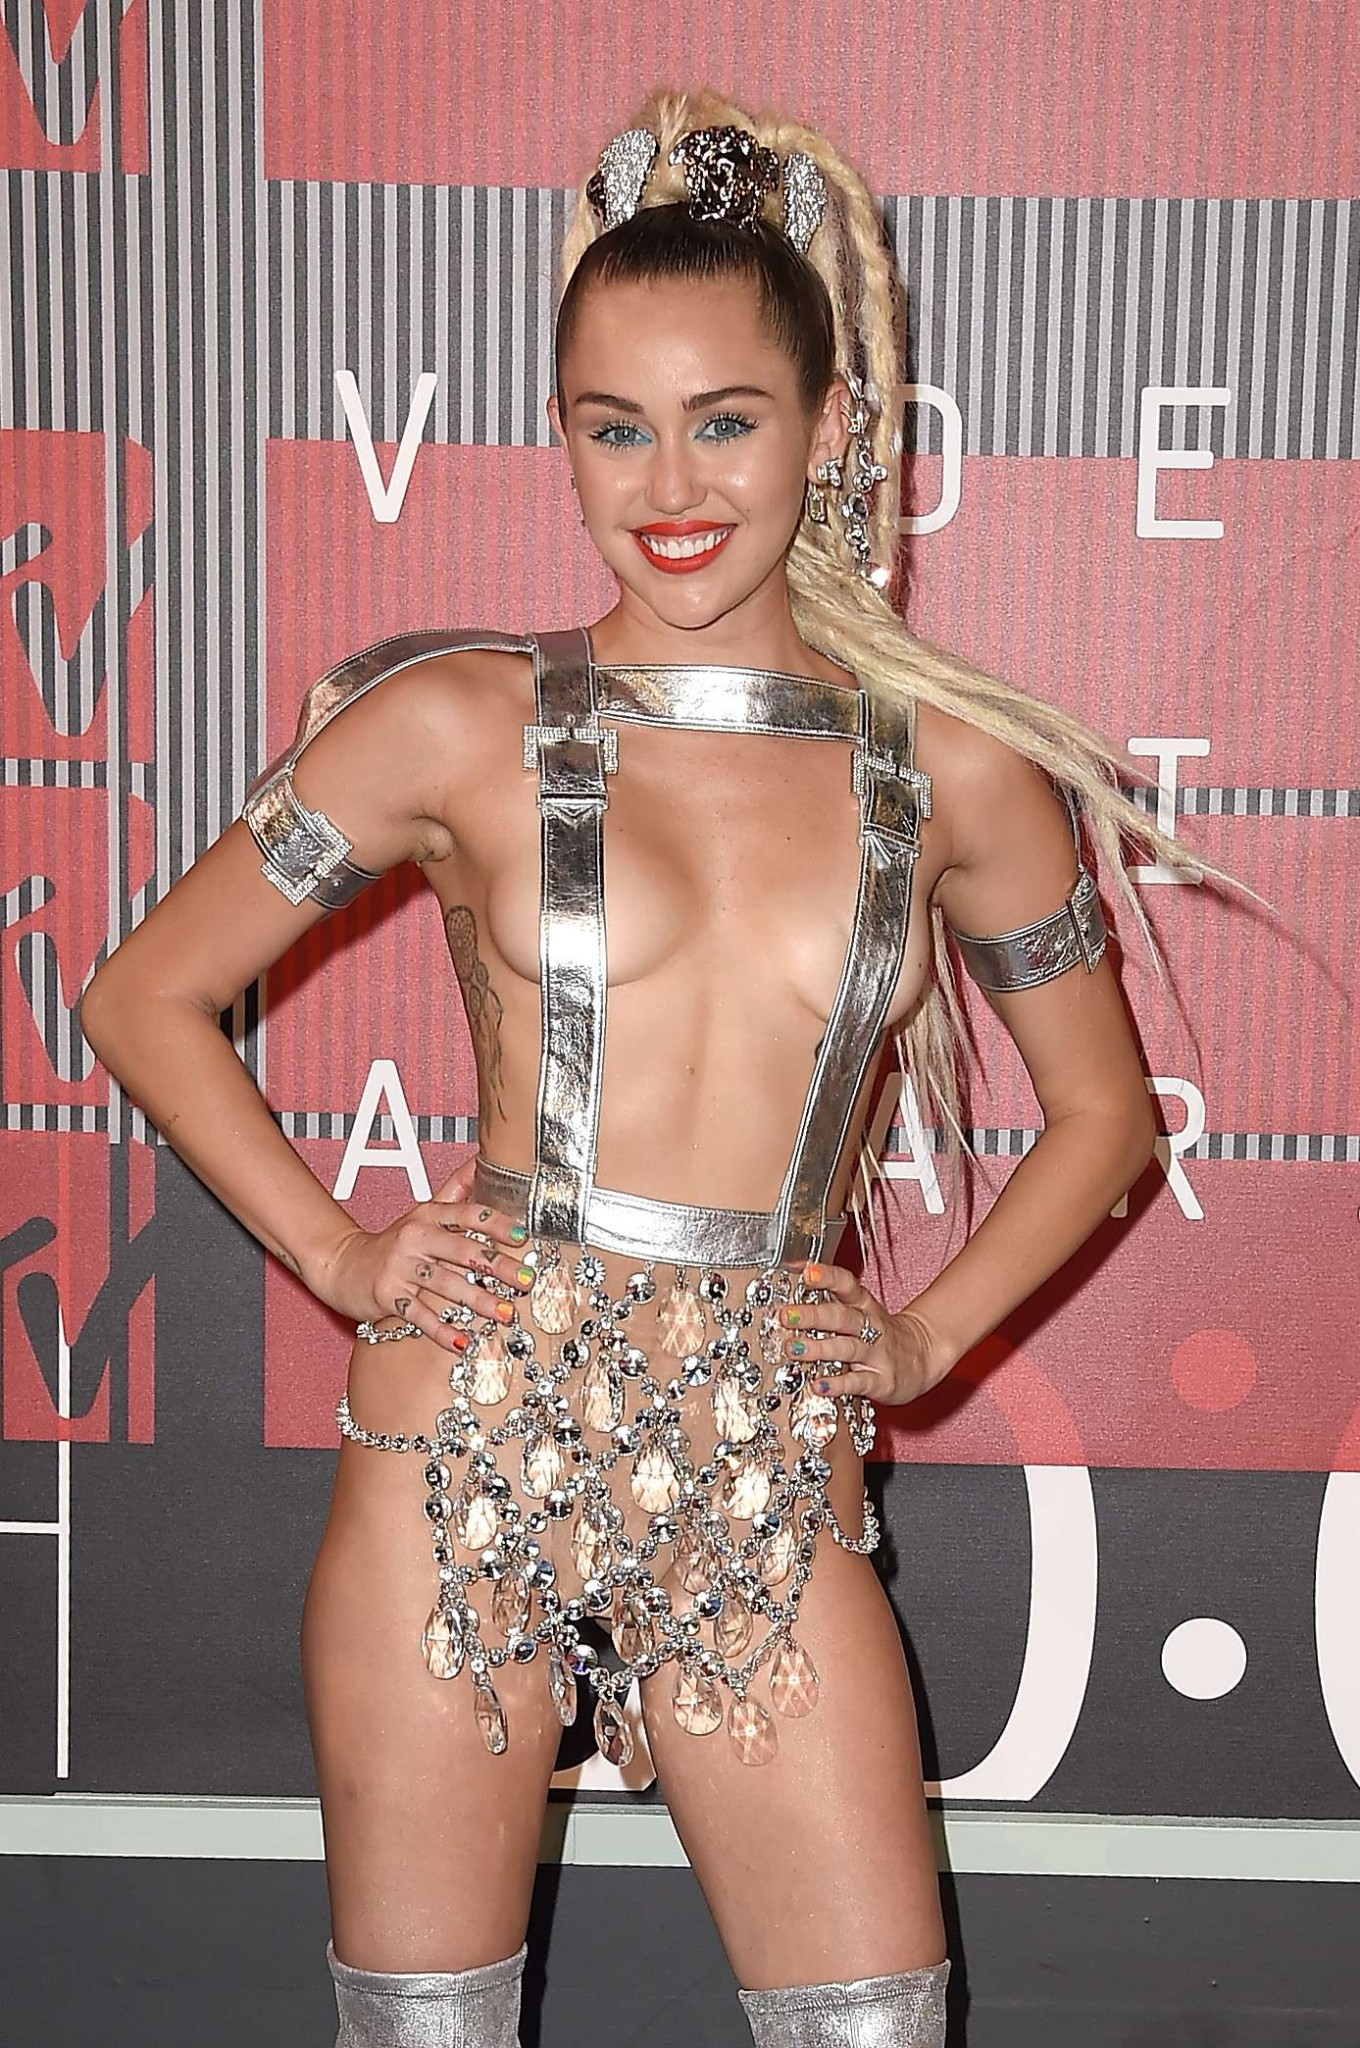 miley-cyrus-naked-porn-pics-best-sex-video-sites